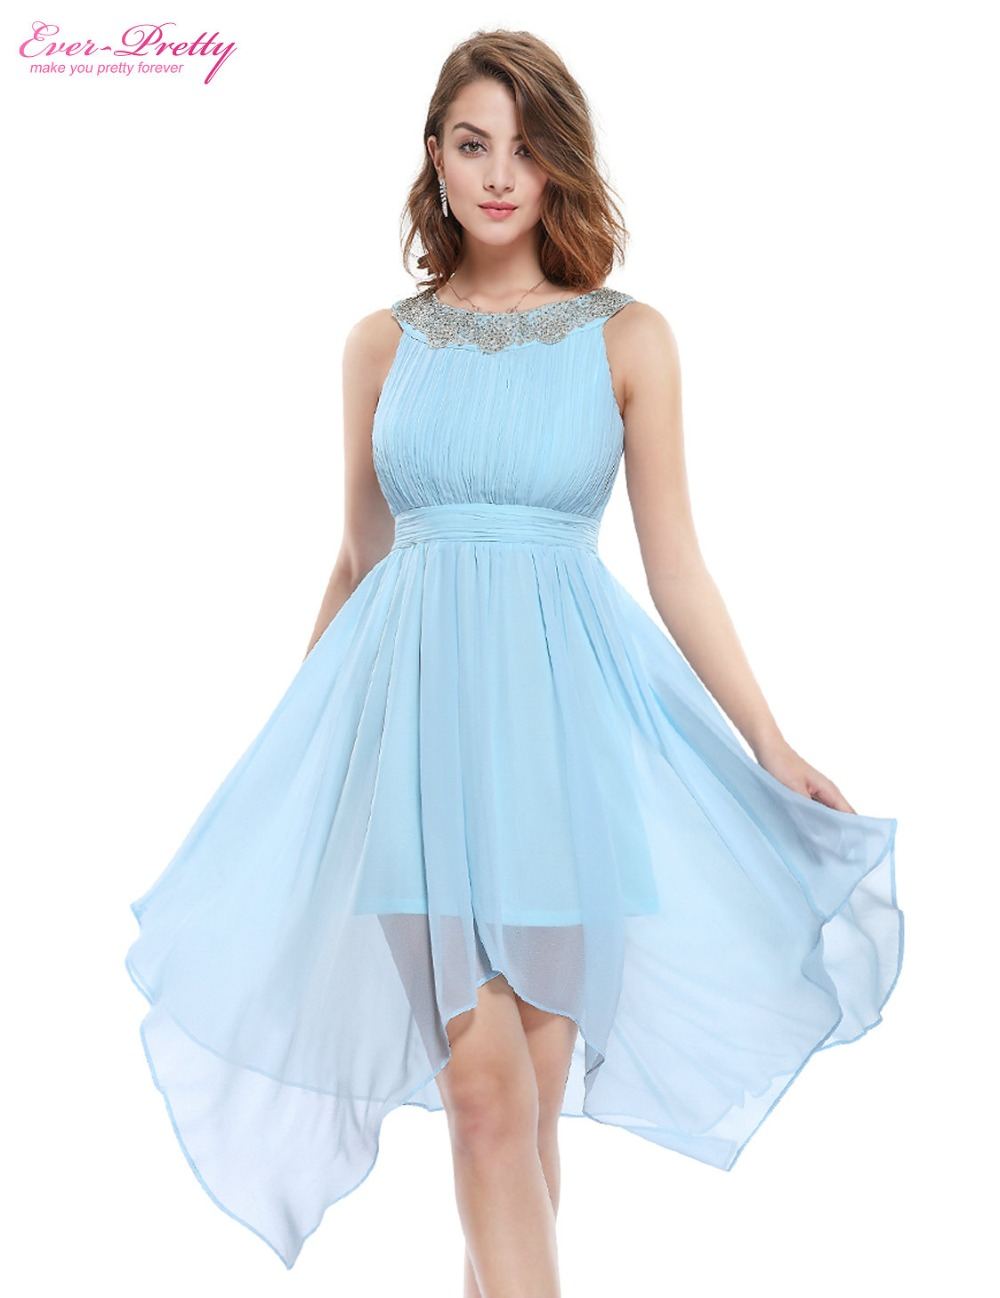 Cheap Pretty Homecoming Dresses Reviews - Online Shopping Cheap ...